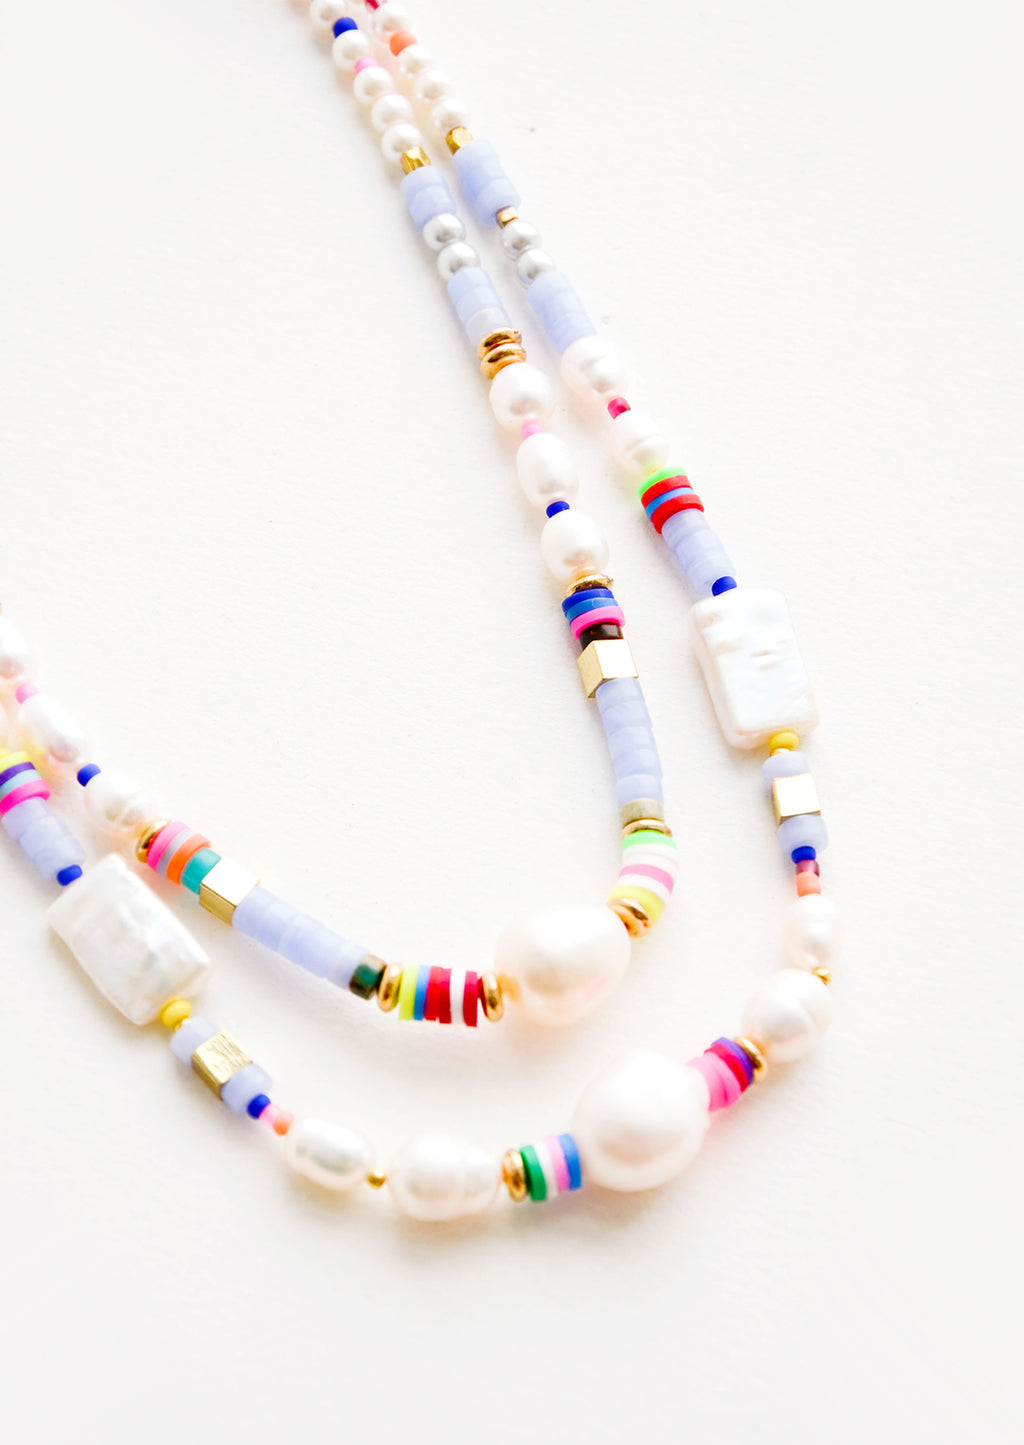 2: A mix of pearl, colorful plastic and gold metal beads on a double strand necklace